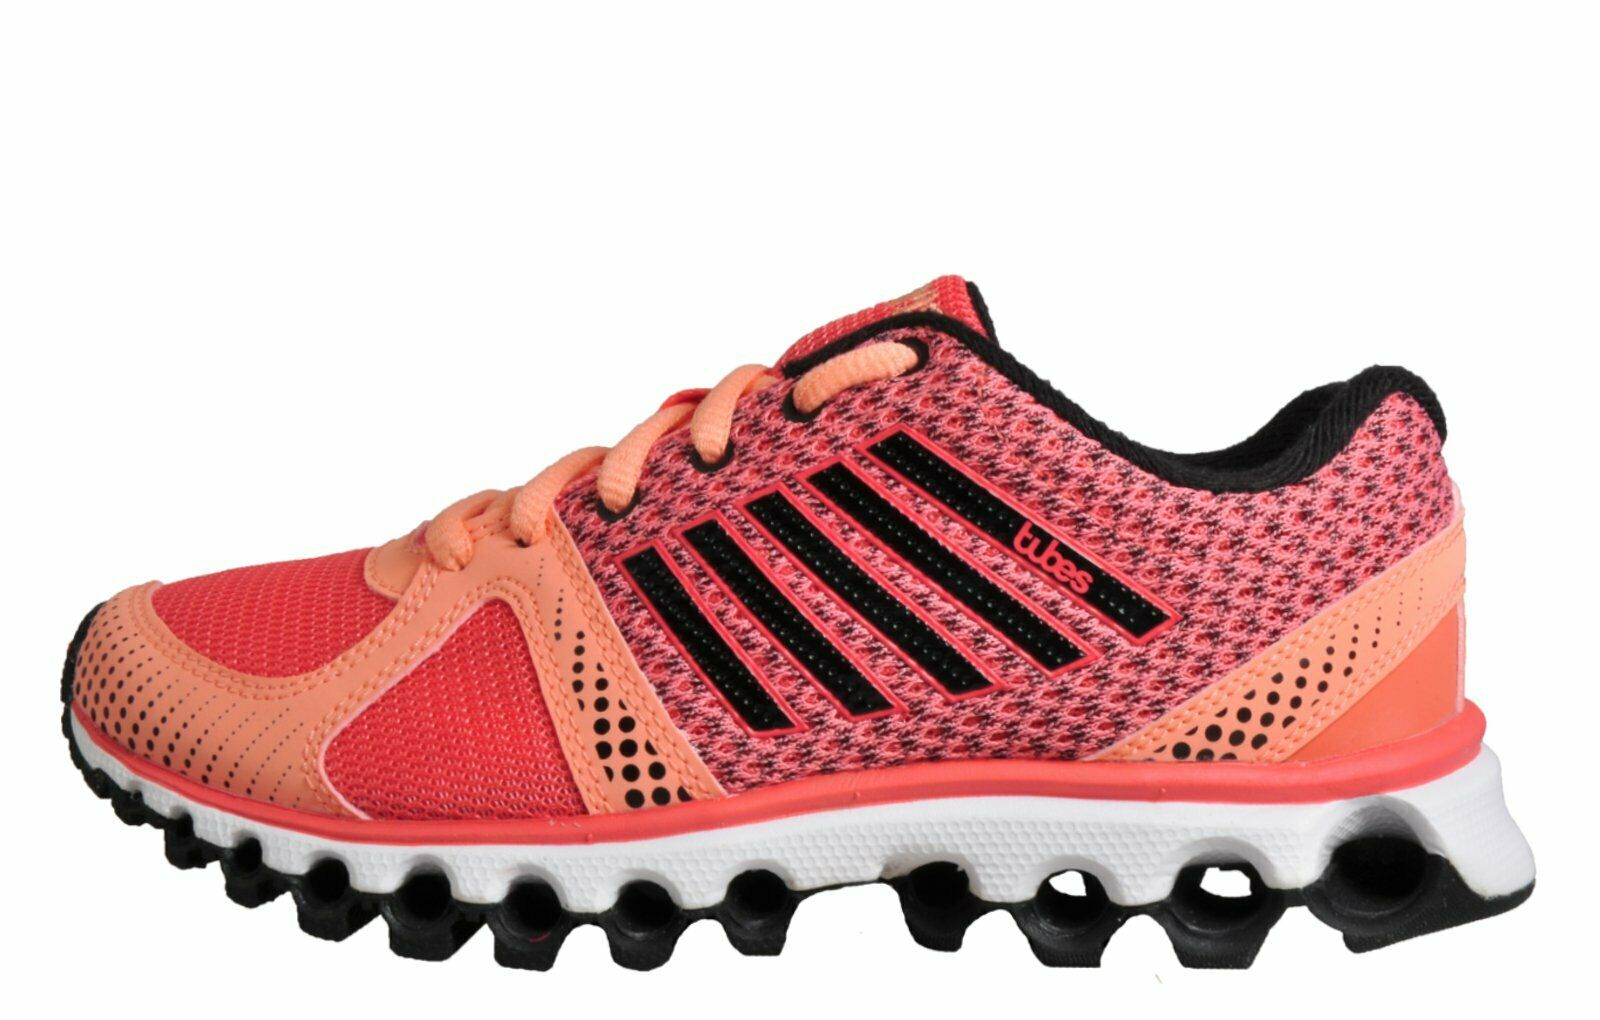 K-Swiss Women's X-160 CMF Trainers Various Colours 888758260675 - 3.5 UK pink